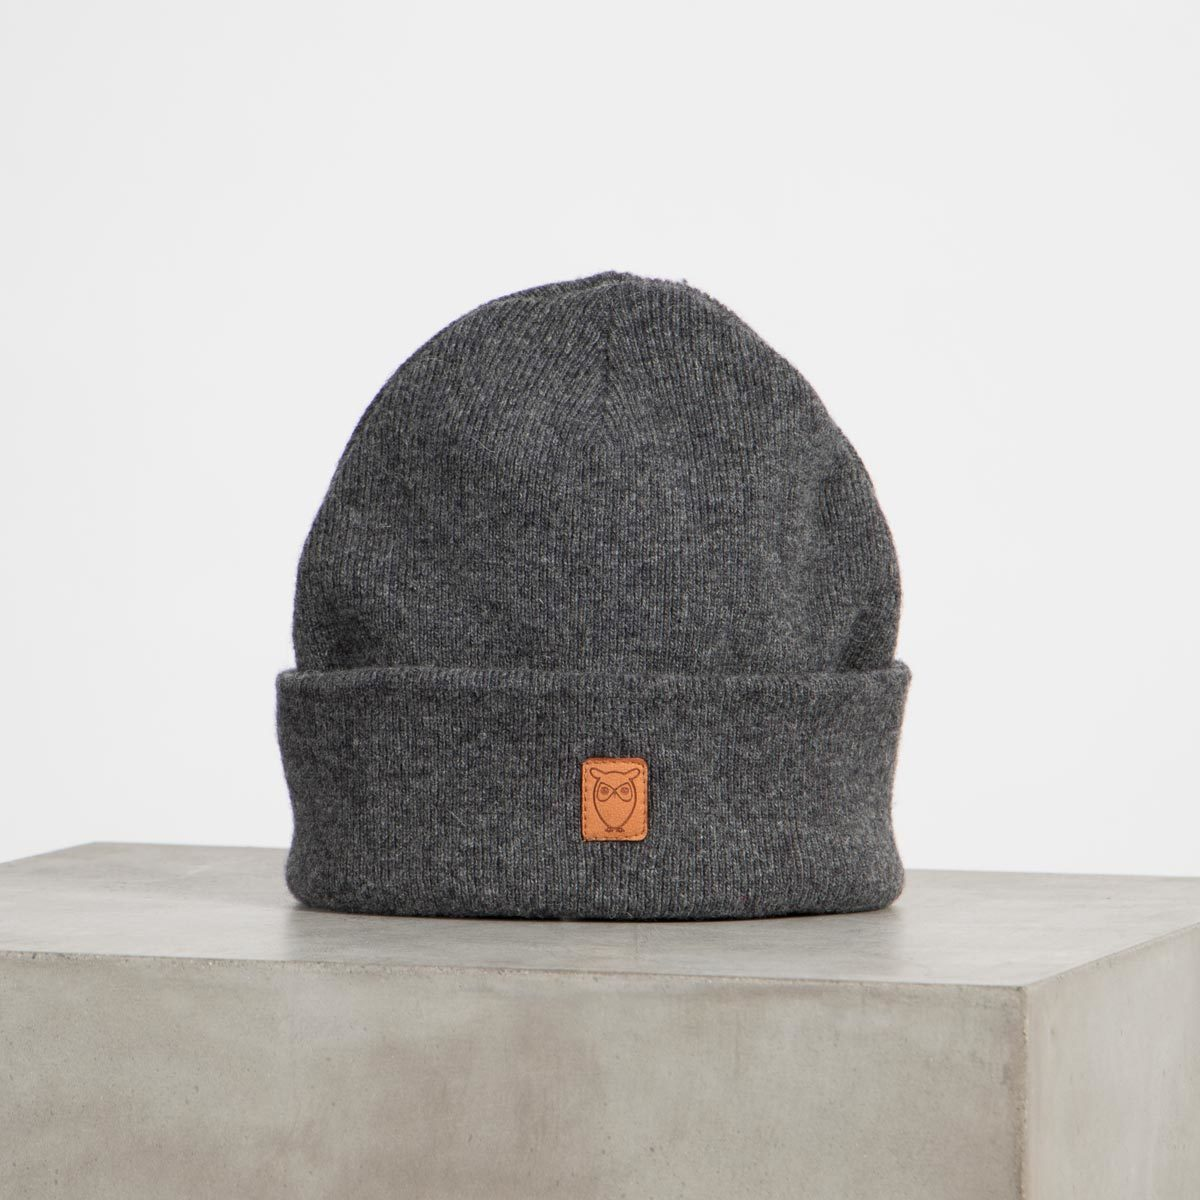 leaf organic wool beanie cots-certified knowledge cotton apparel